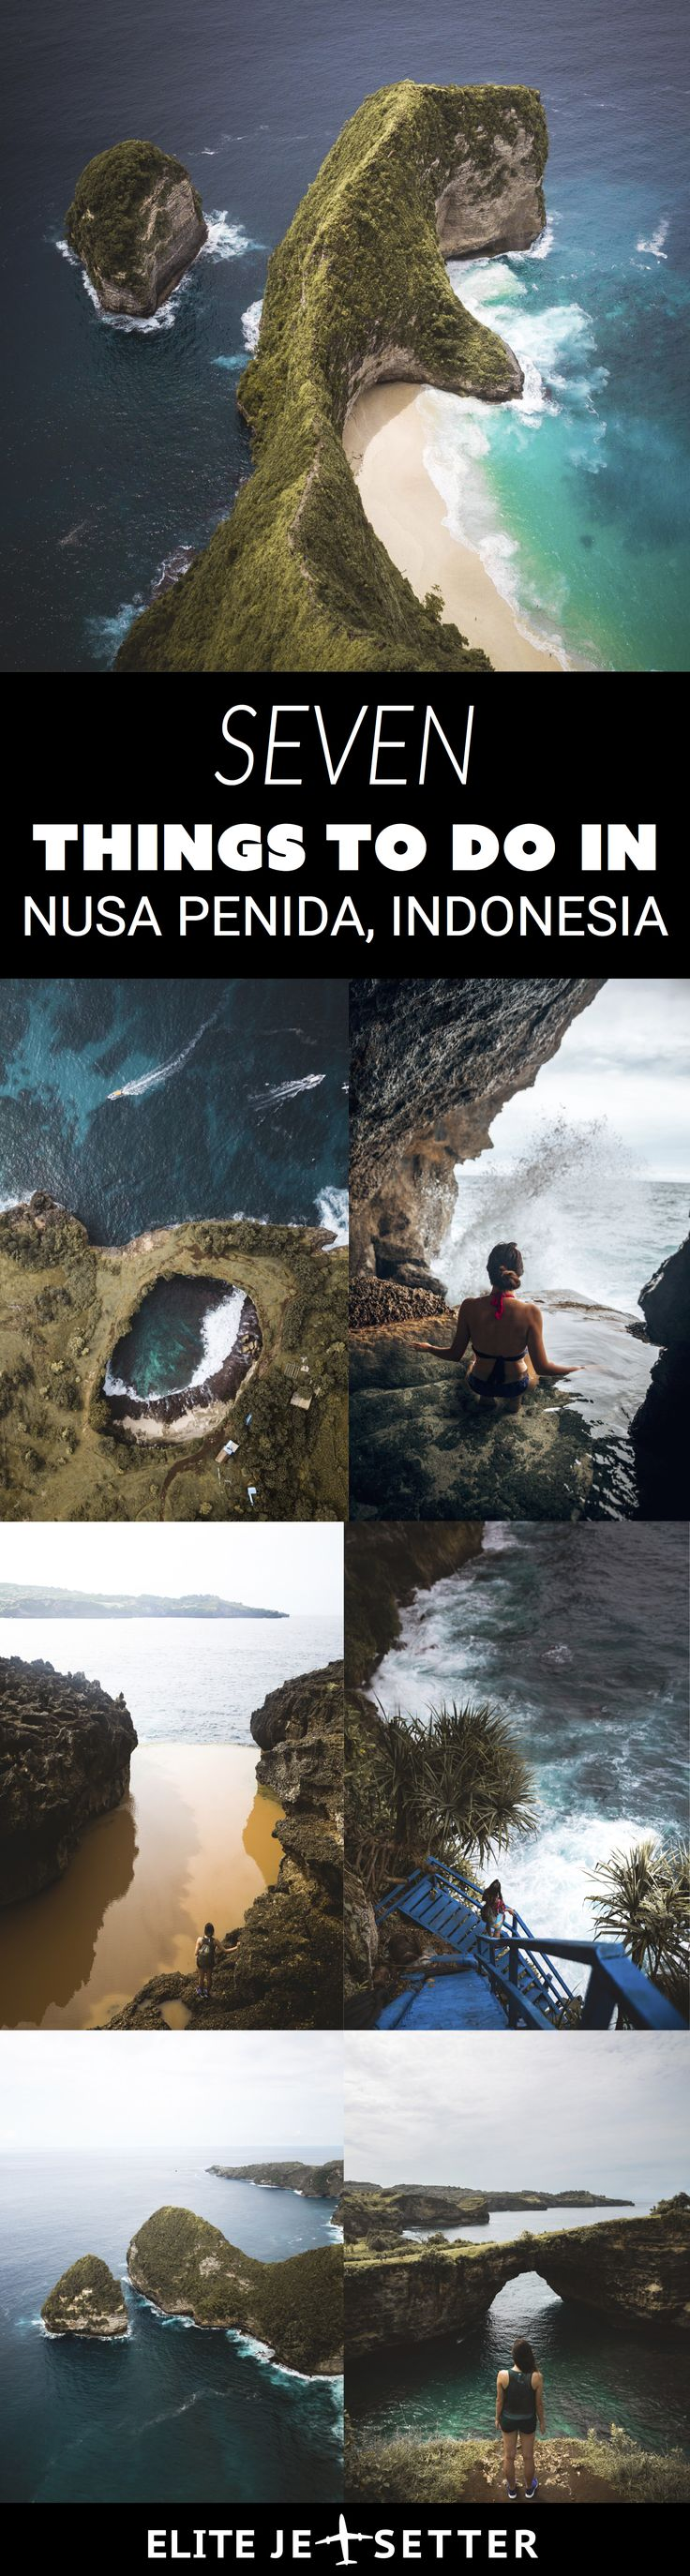 Things to do in Nusa Penida, things to see in Indonesia, bali bucketlist, travel to Bali, Bali things to see, incredible natural wonders, the Trex island and much more! via @elitejetsetters